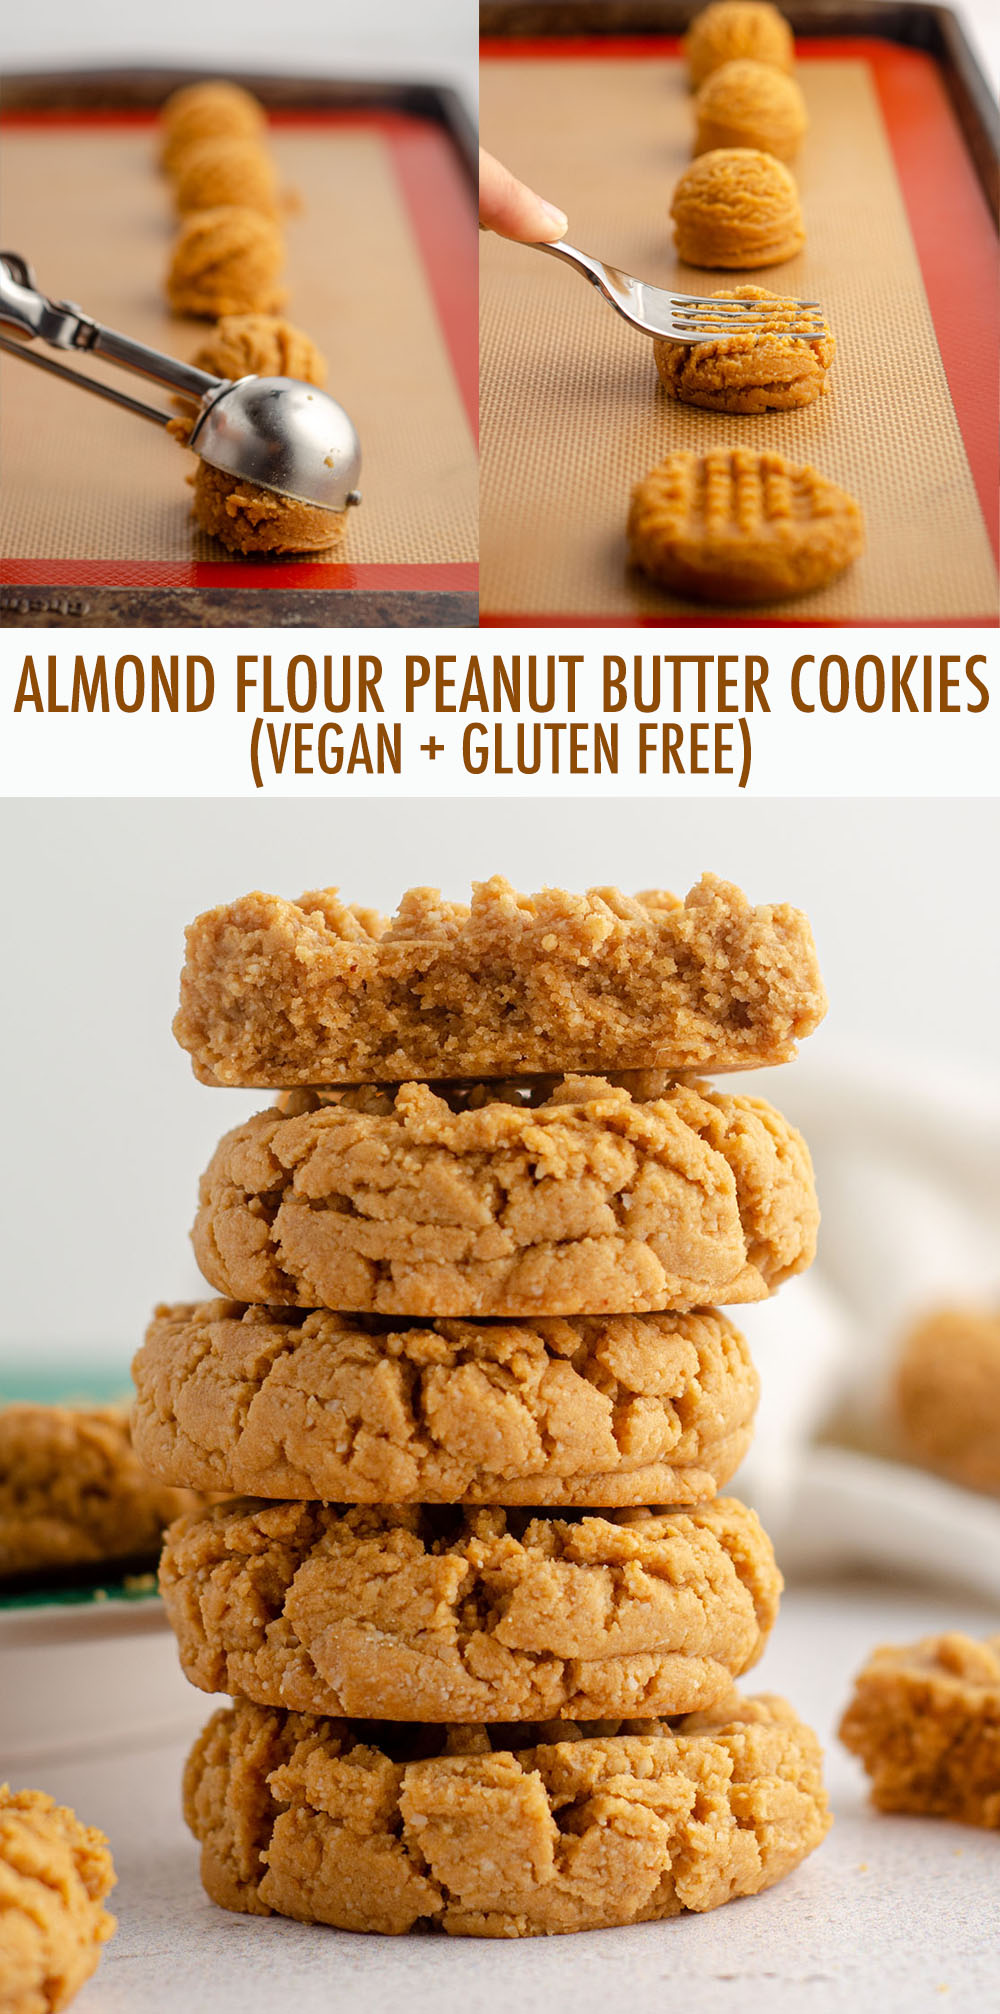 These easy gluten-free peanut butter cookies are full of flavor, sure to satisfy your peanut butter craving, and are completely vegan and egg-free.